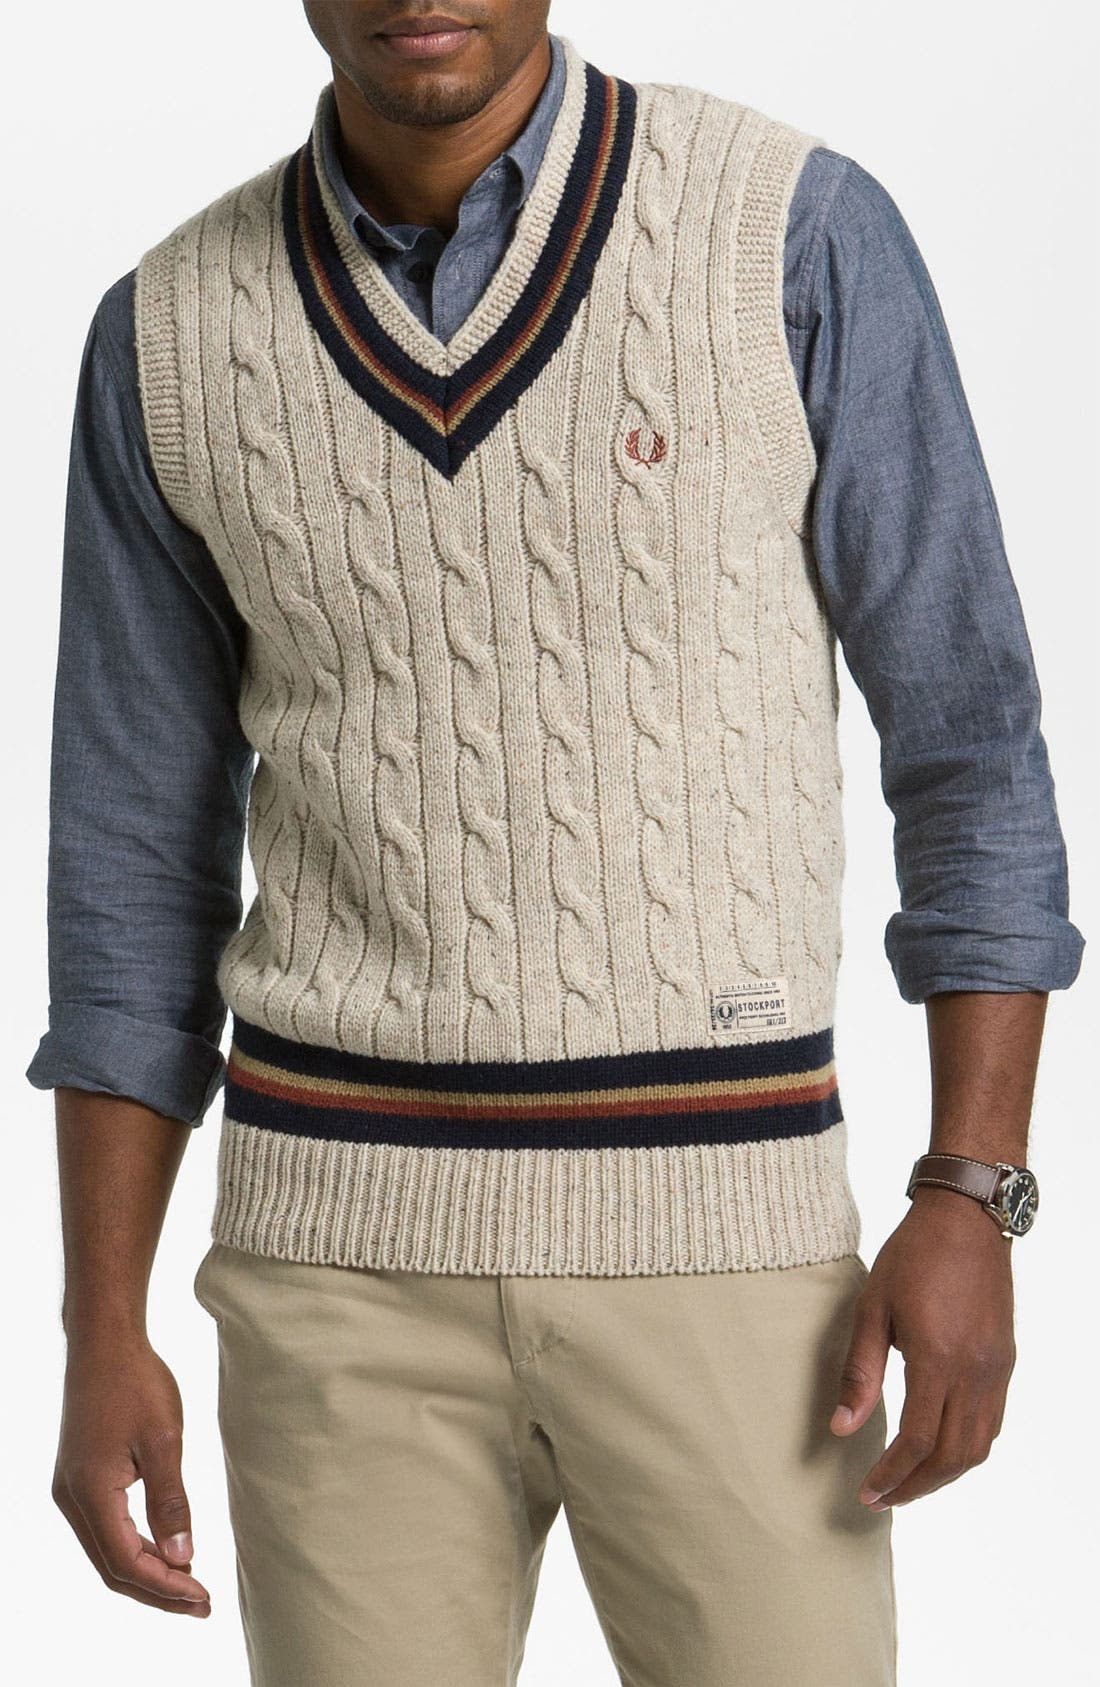 Alternate Image 1 Selected - Fred Perry V-Neck Lambswool Sweater Vest